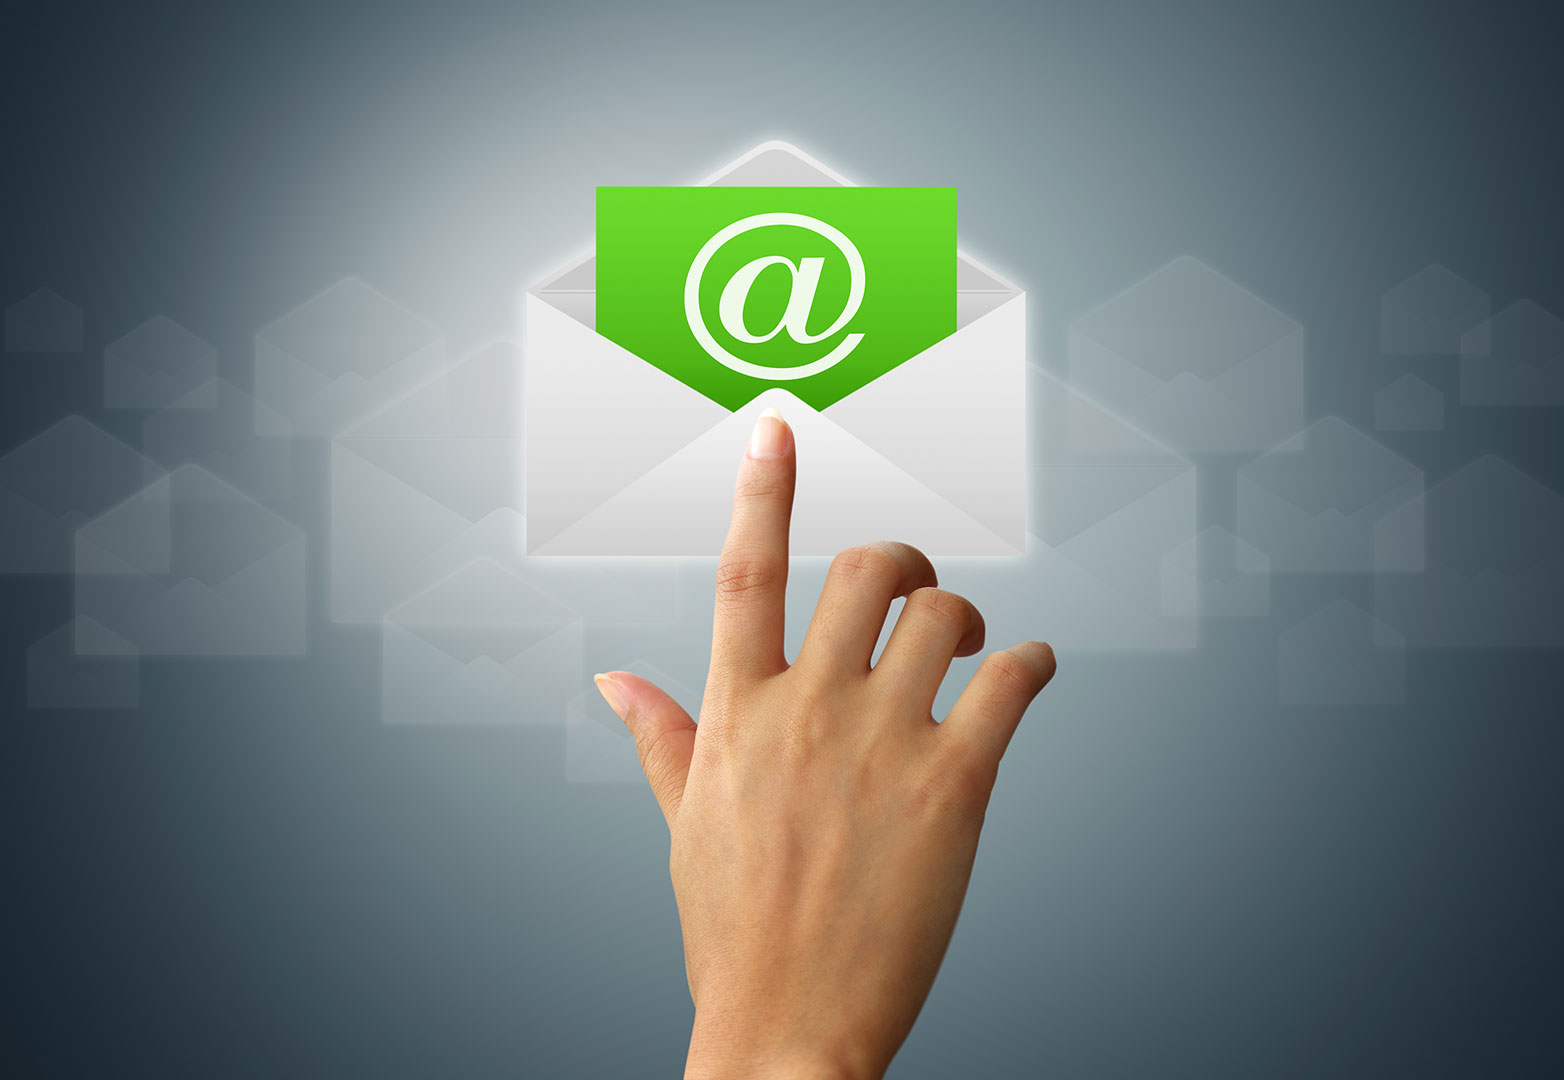 Take advantage of your email signature